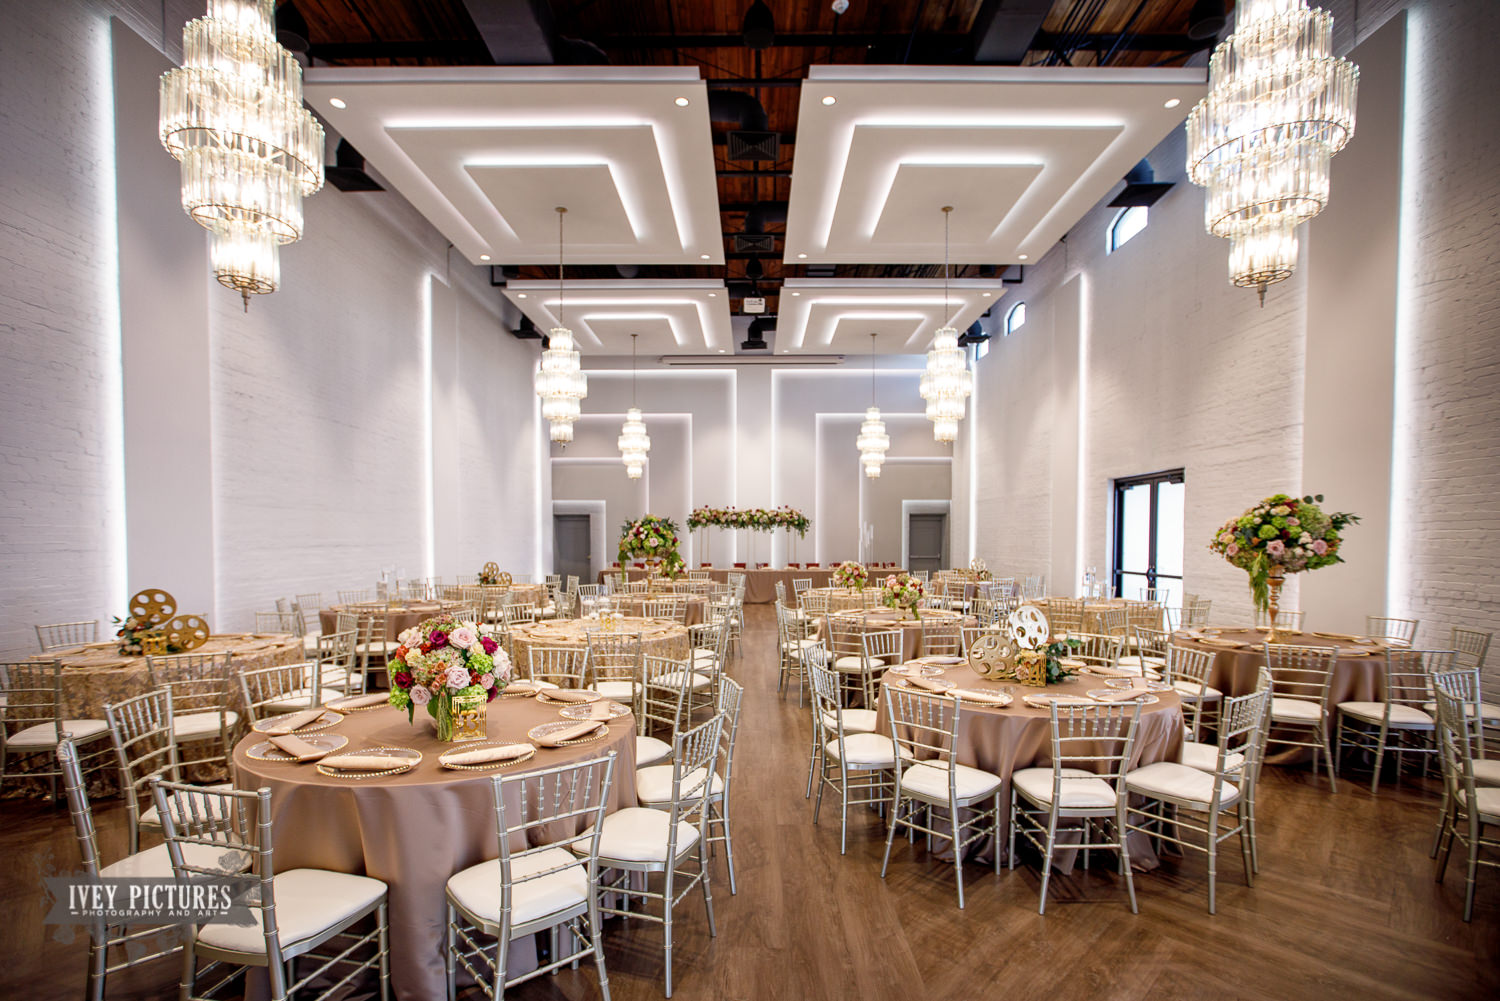 Clay Theatre ballroom at wedding